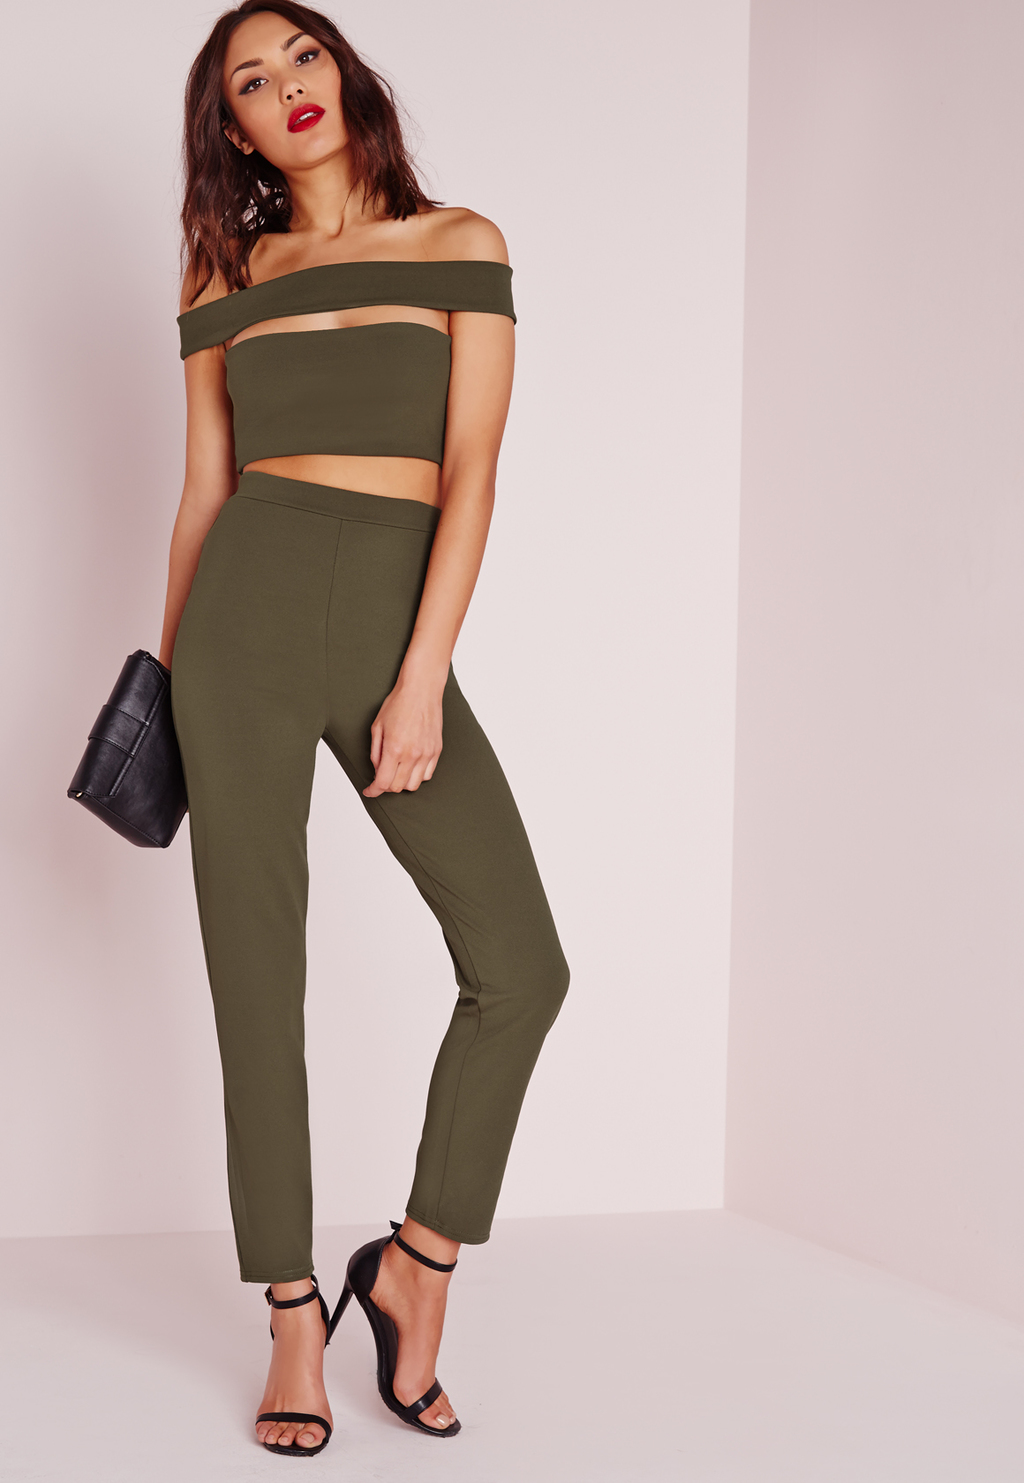 Bandage Bardot Tapered Leg Jumpsuit Khaki, Beige - length: standard; neckline: off the shoulder; pattern: plain; sleeve style: sleeveless; predominant colour: khaki; occasions: evening, occasion; fit: body skimming; fibres: polyester/polyamide - stretch; waist detail: cut out detail; sleeve length: sleeveless; texture group: lycra/elastane mixes; style: jumpsuit; pattern type: fabric; season: s/s 2016